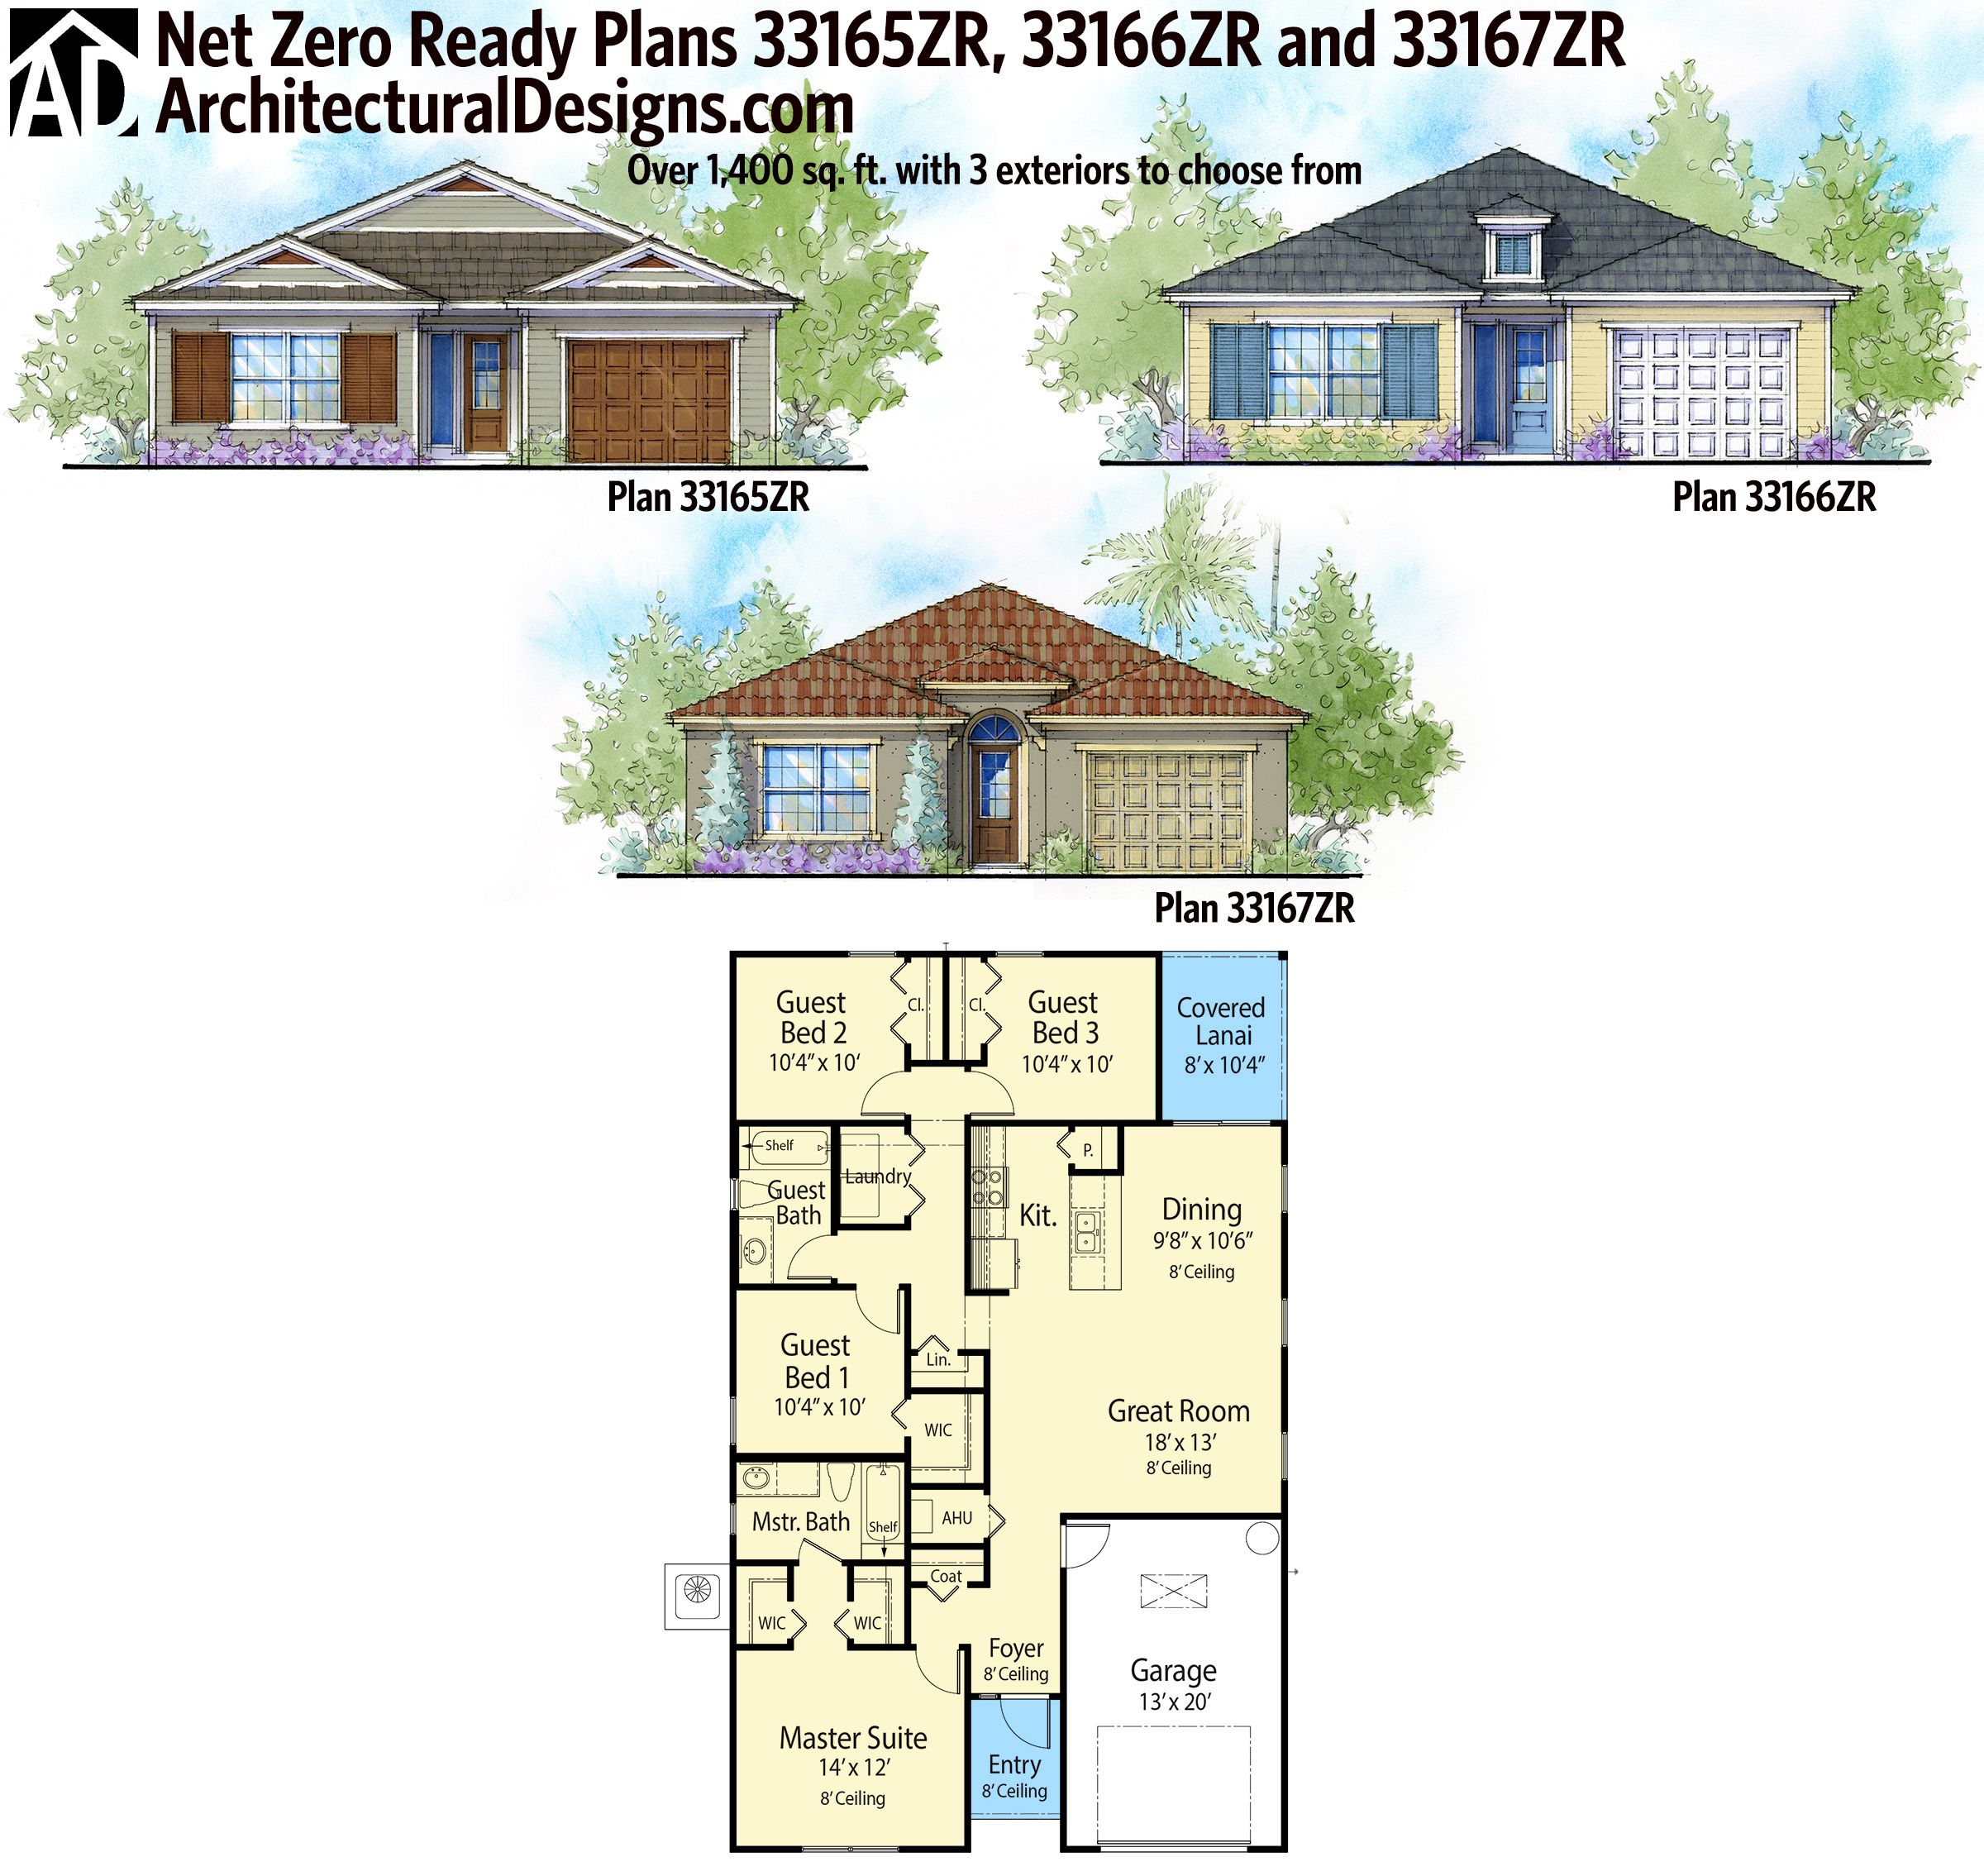 Plan 33165zr 4 bed compact net zero ready house plan for Net zero floor plans